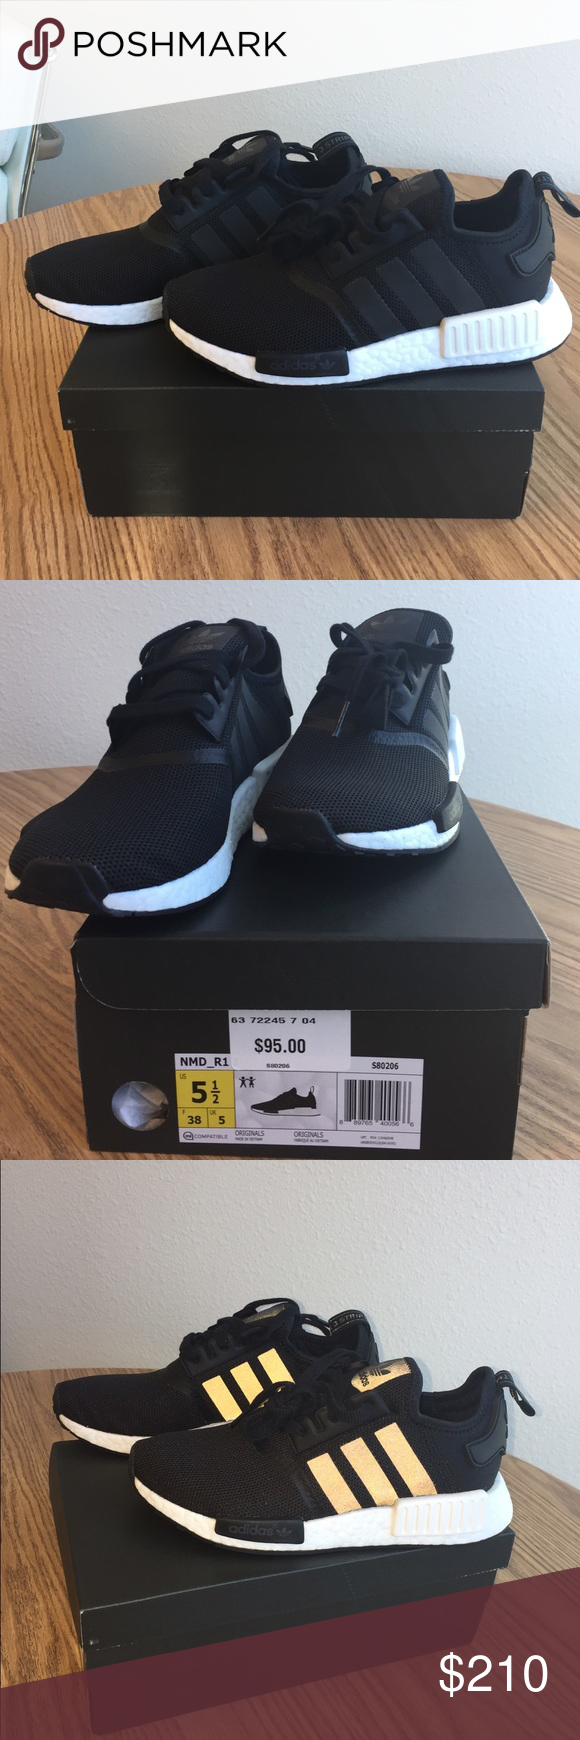 Brand new adidas NMD size 5.5y in black Brand new in box 9563d82b0